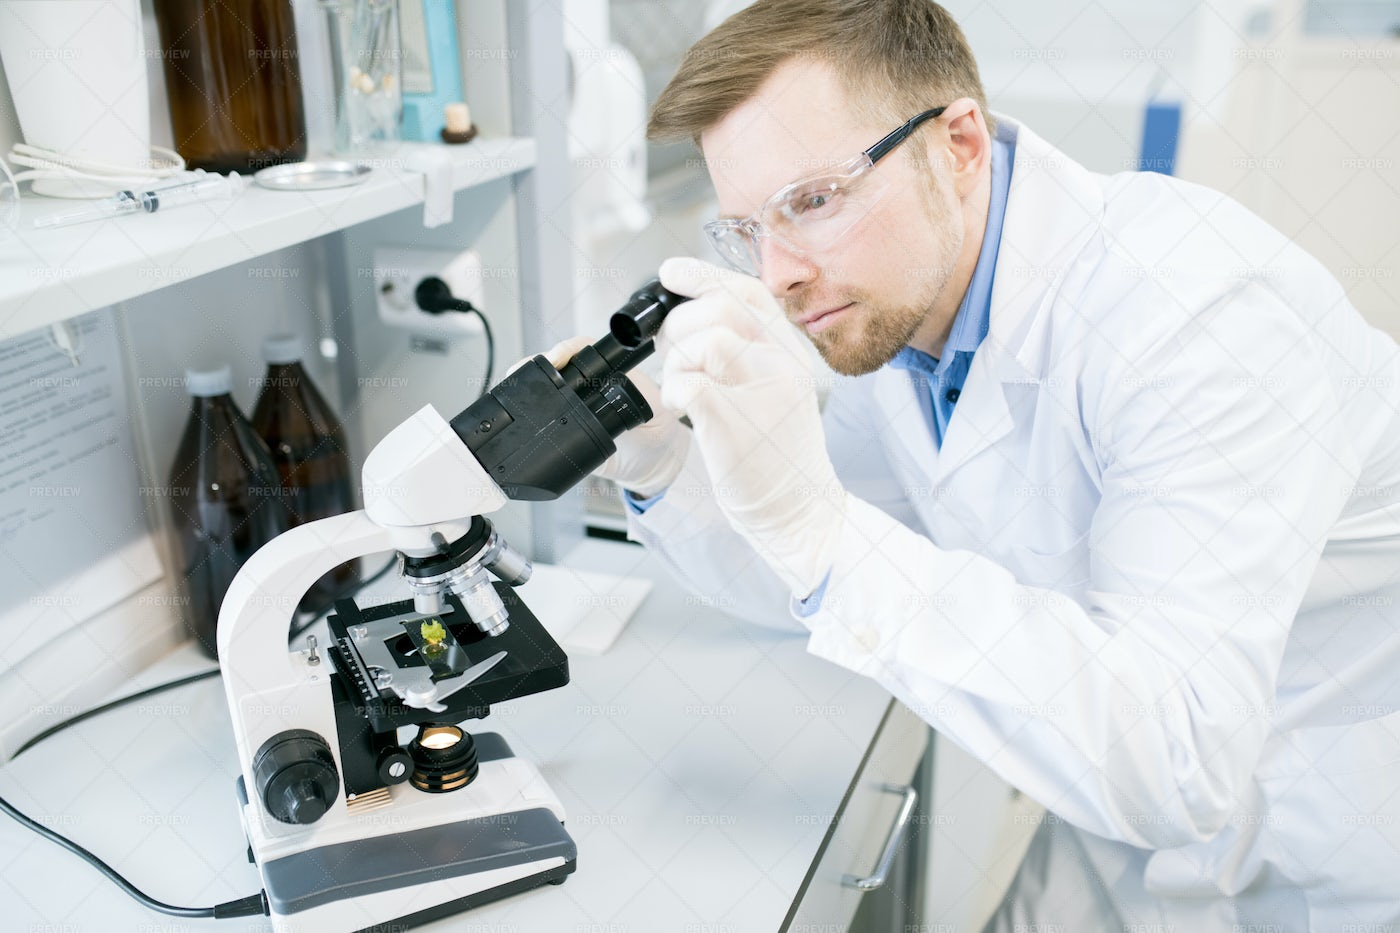 Male Microbiologist Studying Food...: Stock Photos